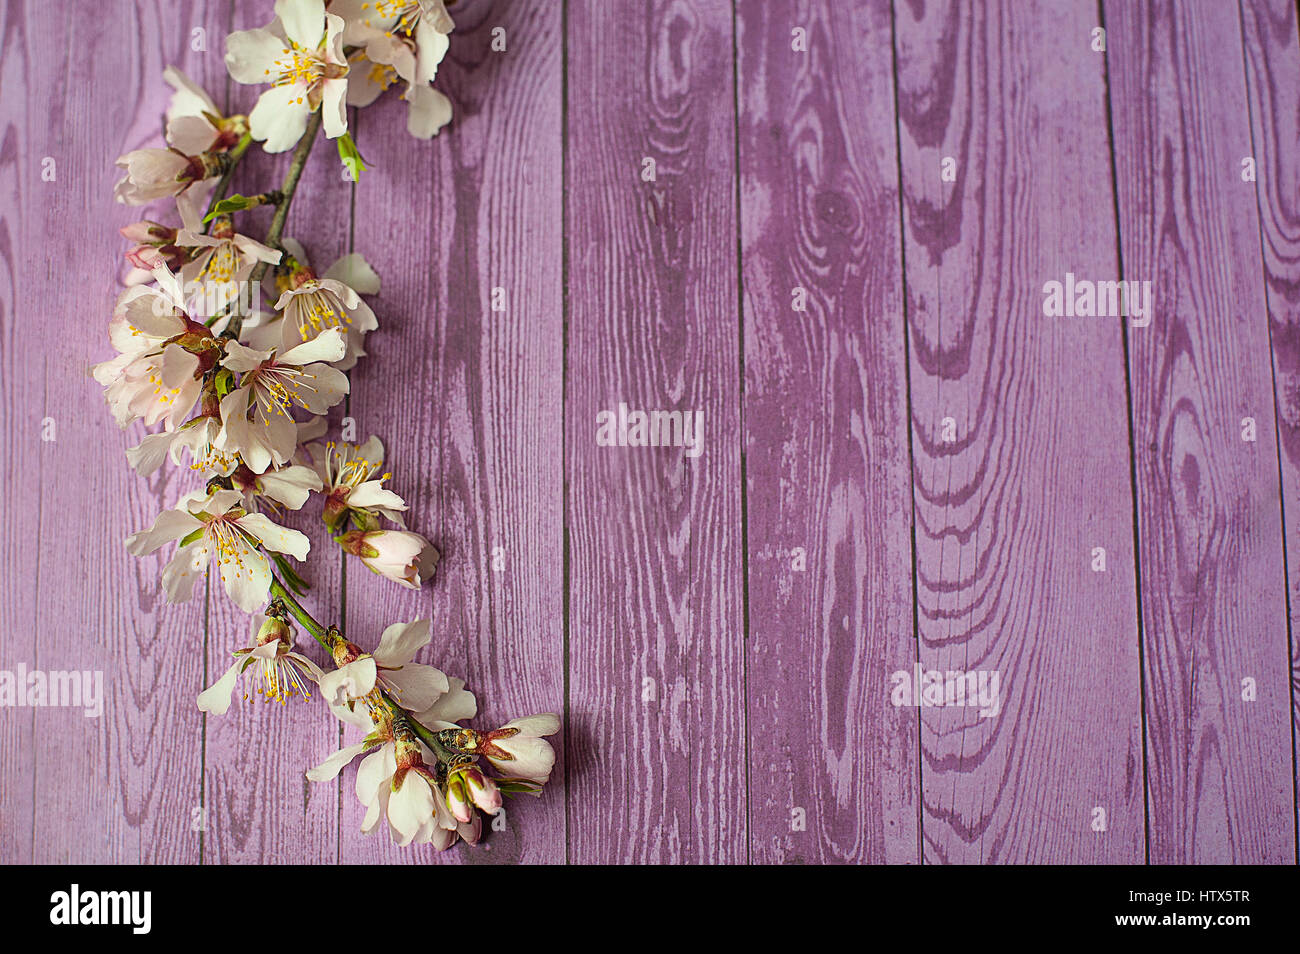 Spring Flowering Branch On Wooden Background Peach Blossoms Stock